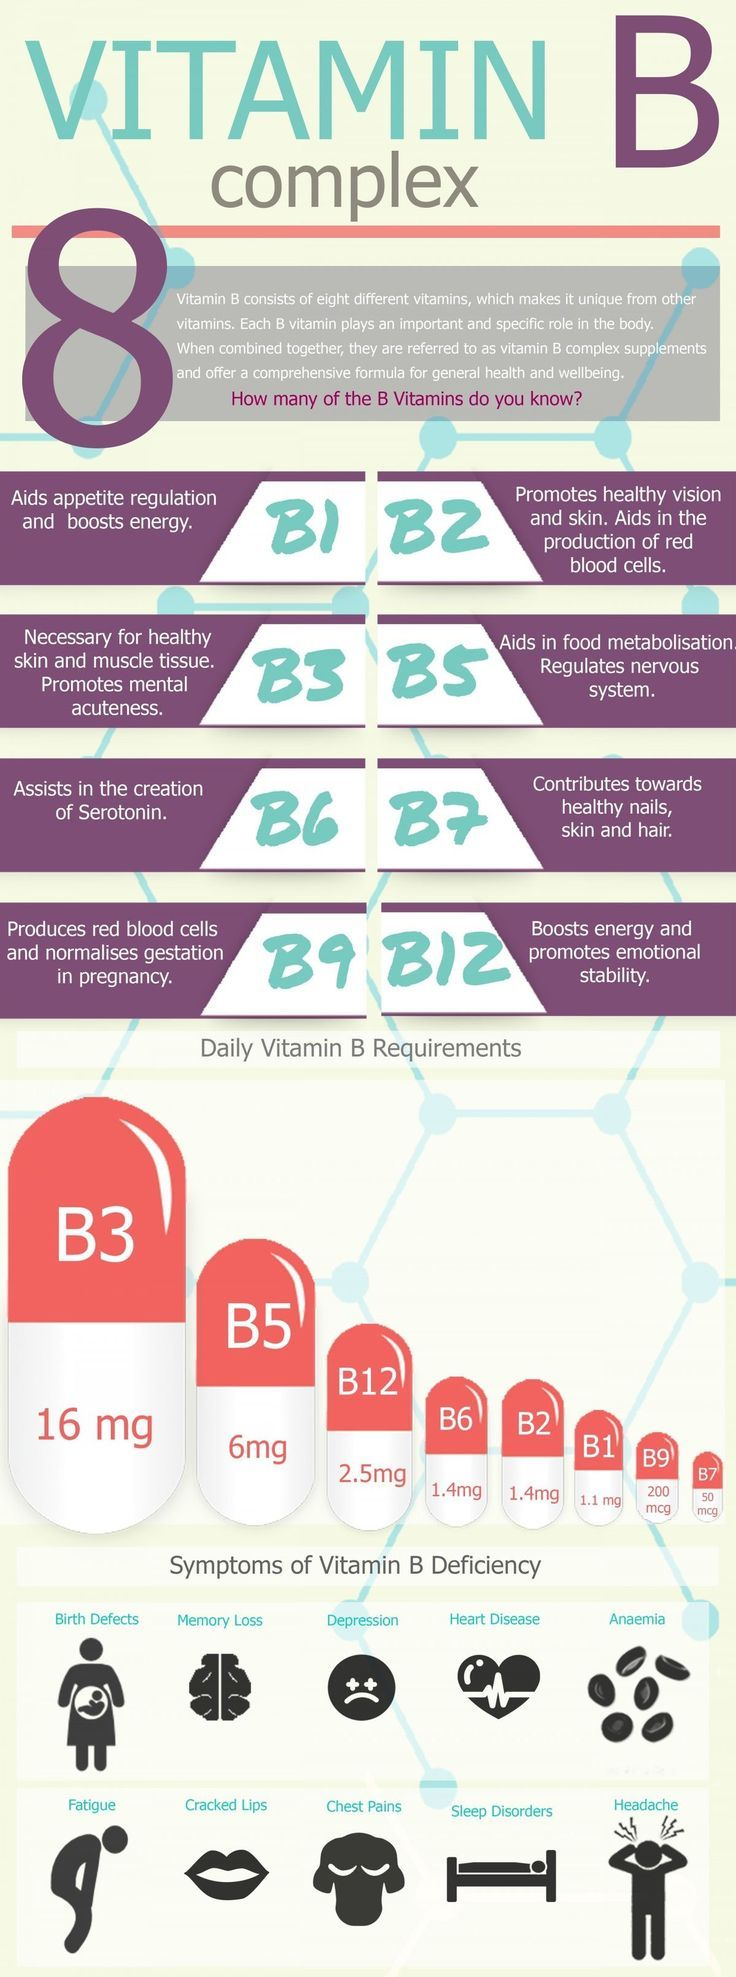 What does vitamin B do in your body?